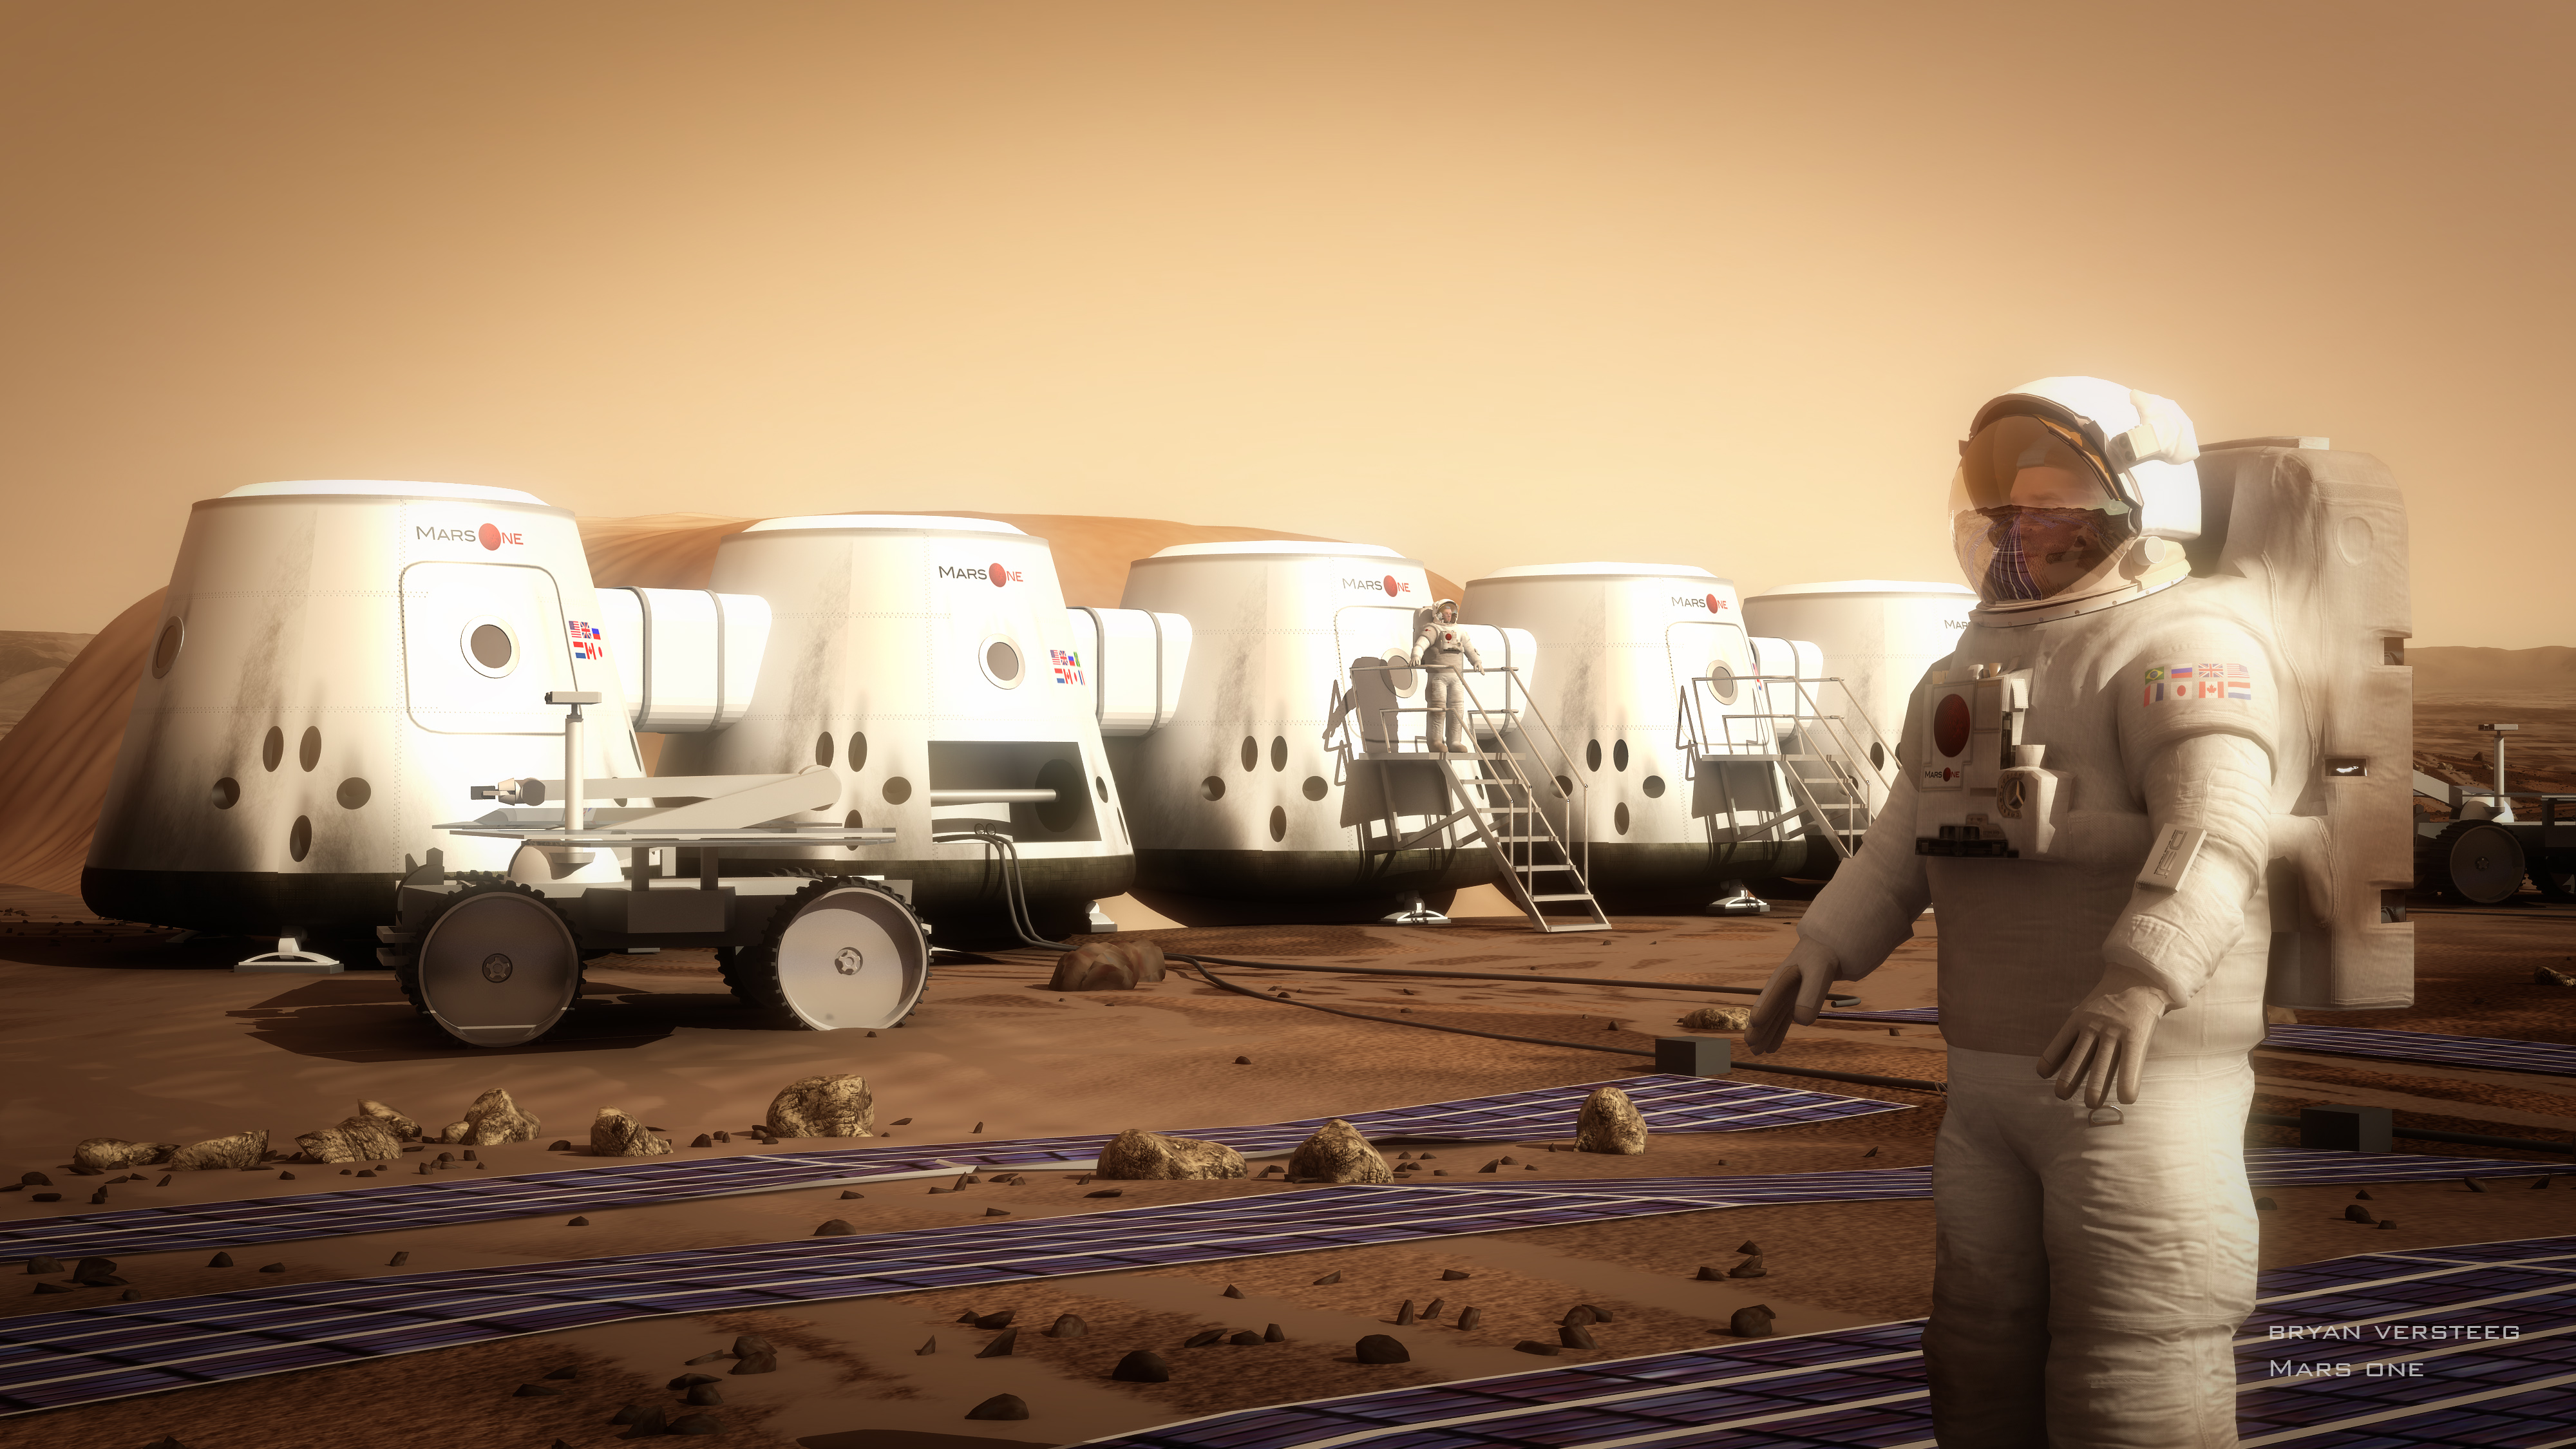 Mars One wants to establish the first human settlement on the Red Planet by 2025. Illustration by Bryan Versteeg via Mars One